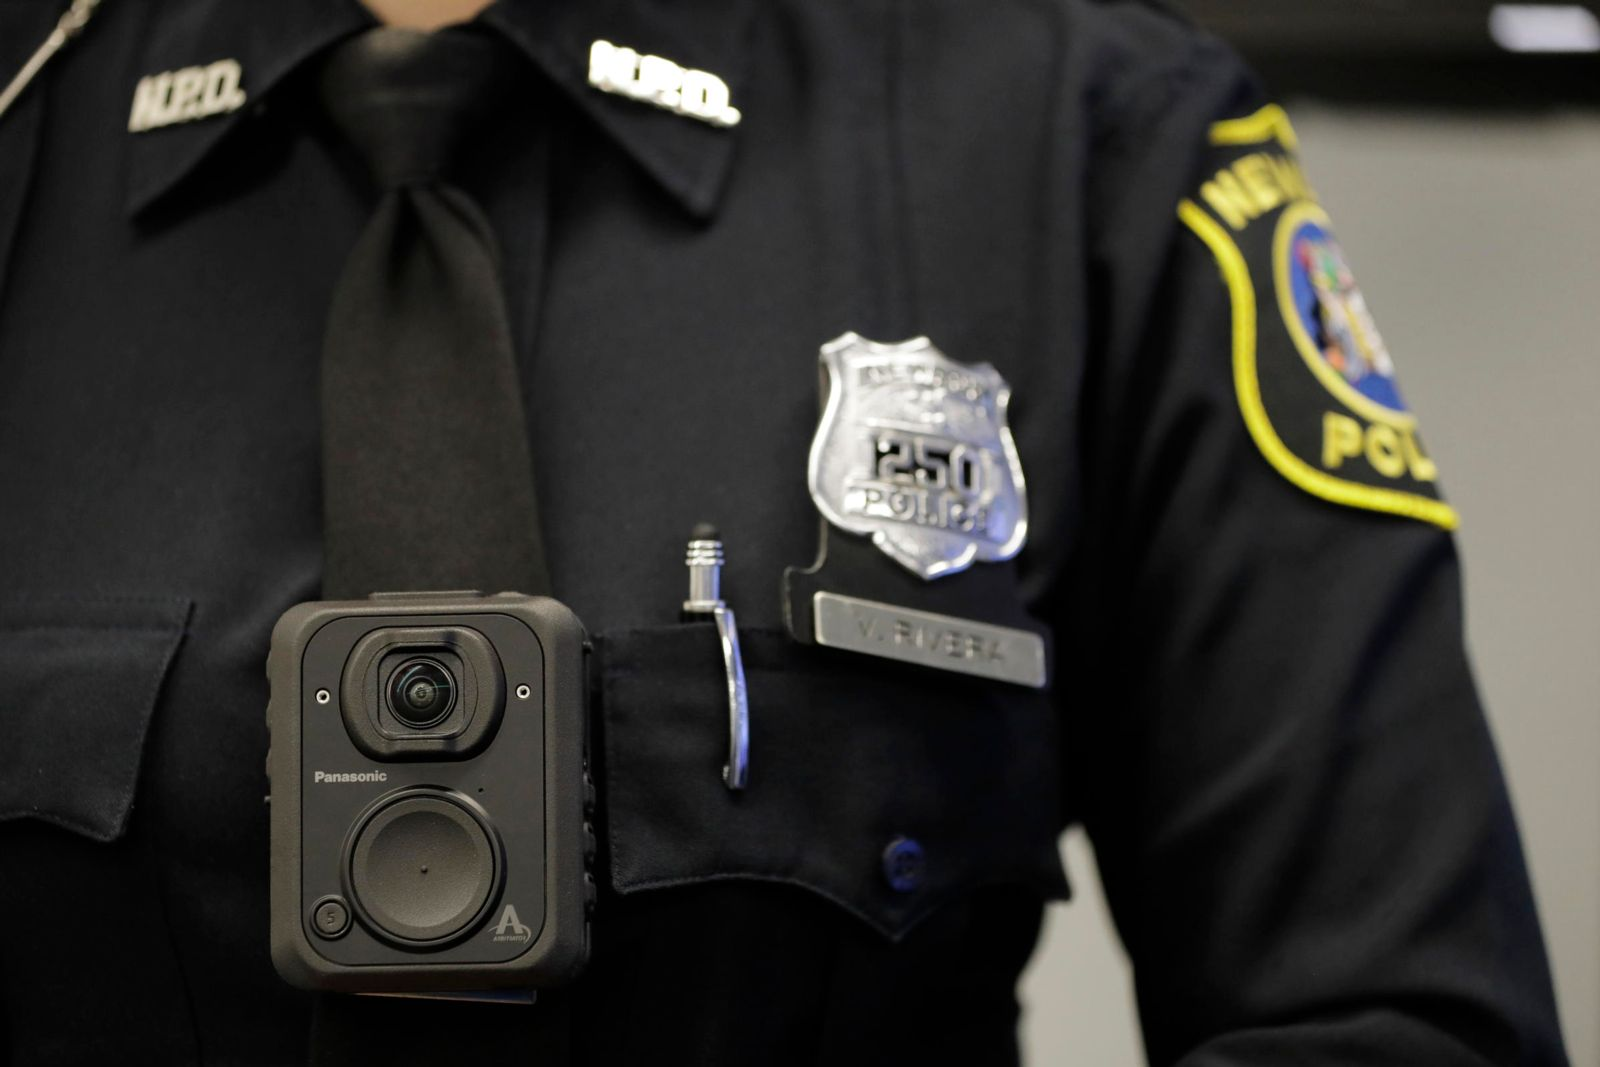 Fort Lauderdale Body Cameras on Police Officers in South Florida